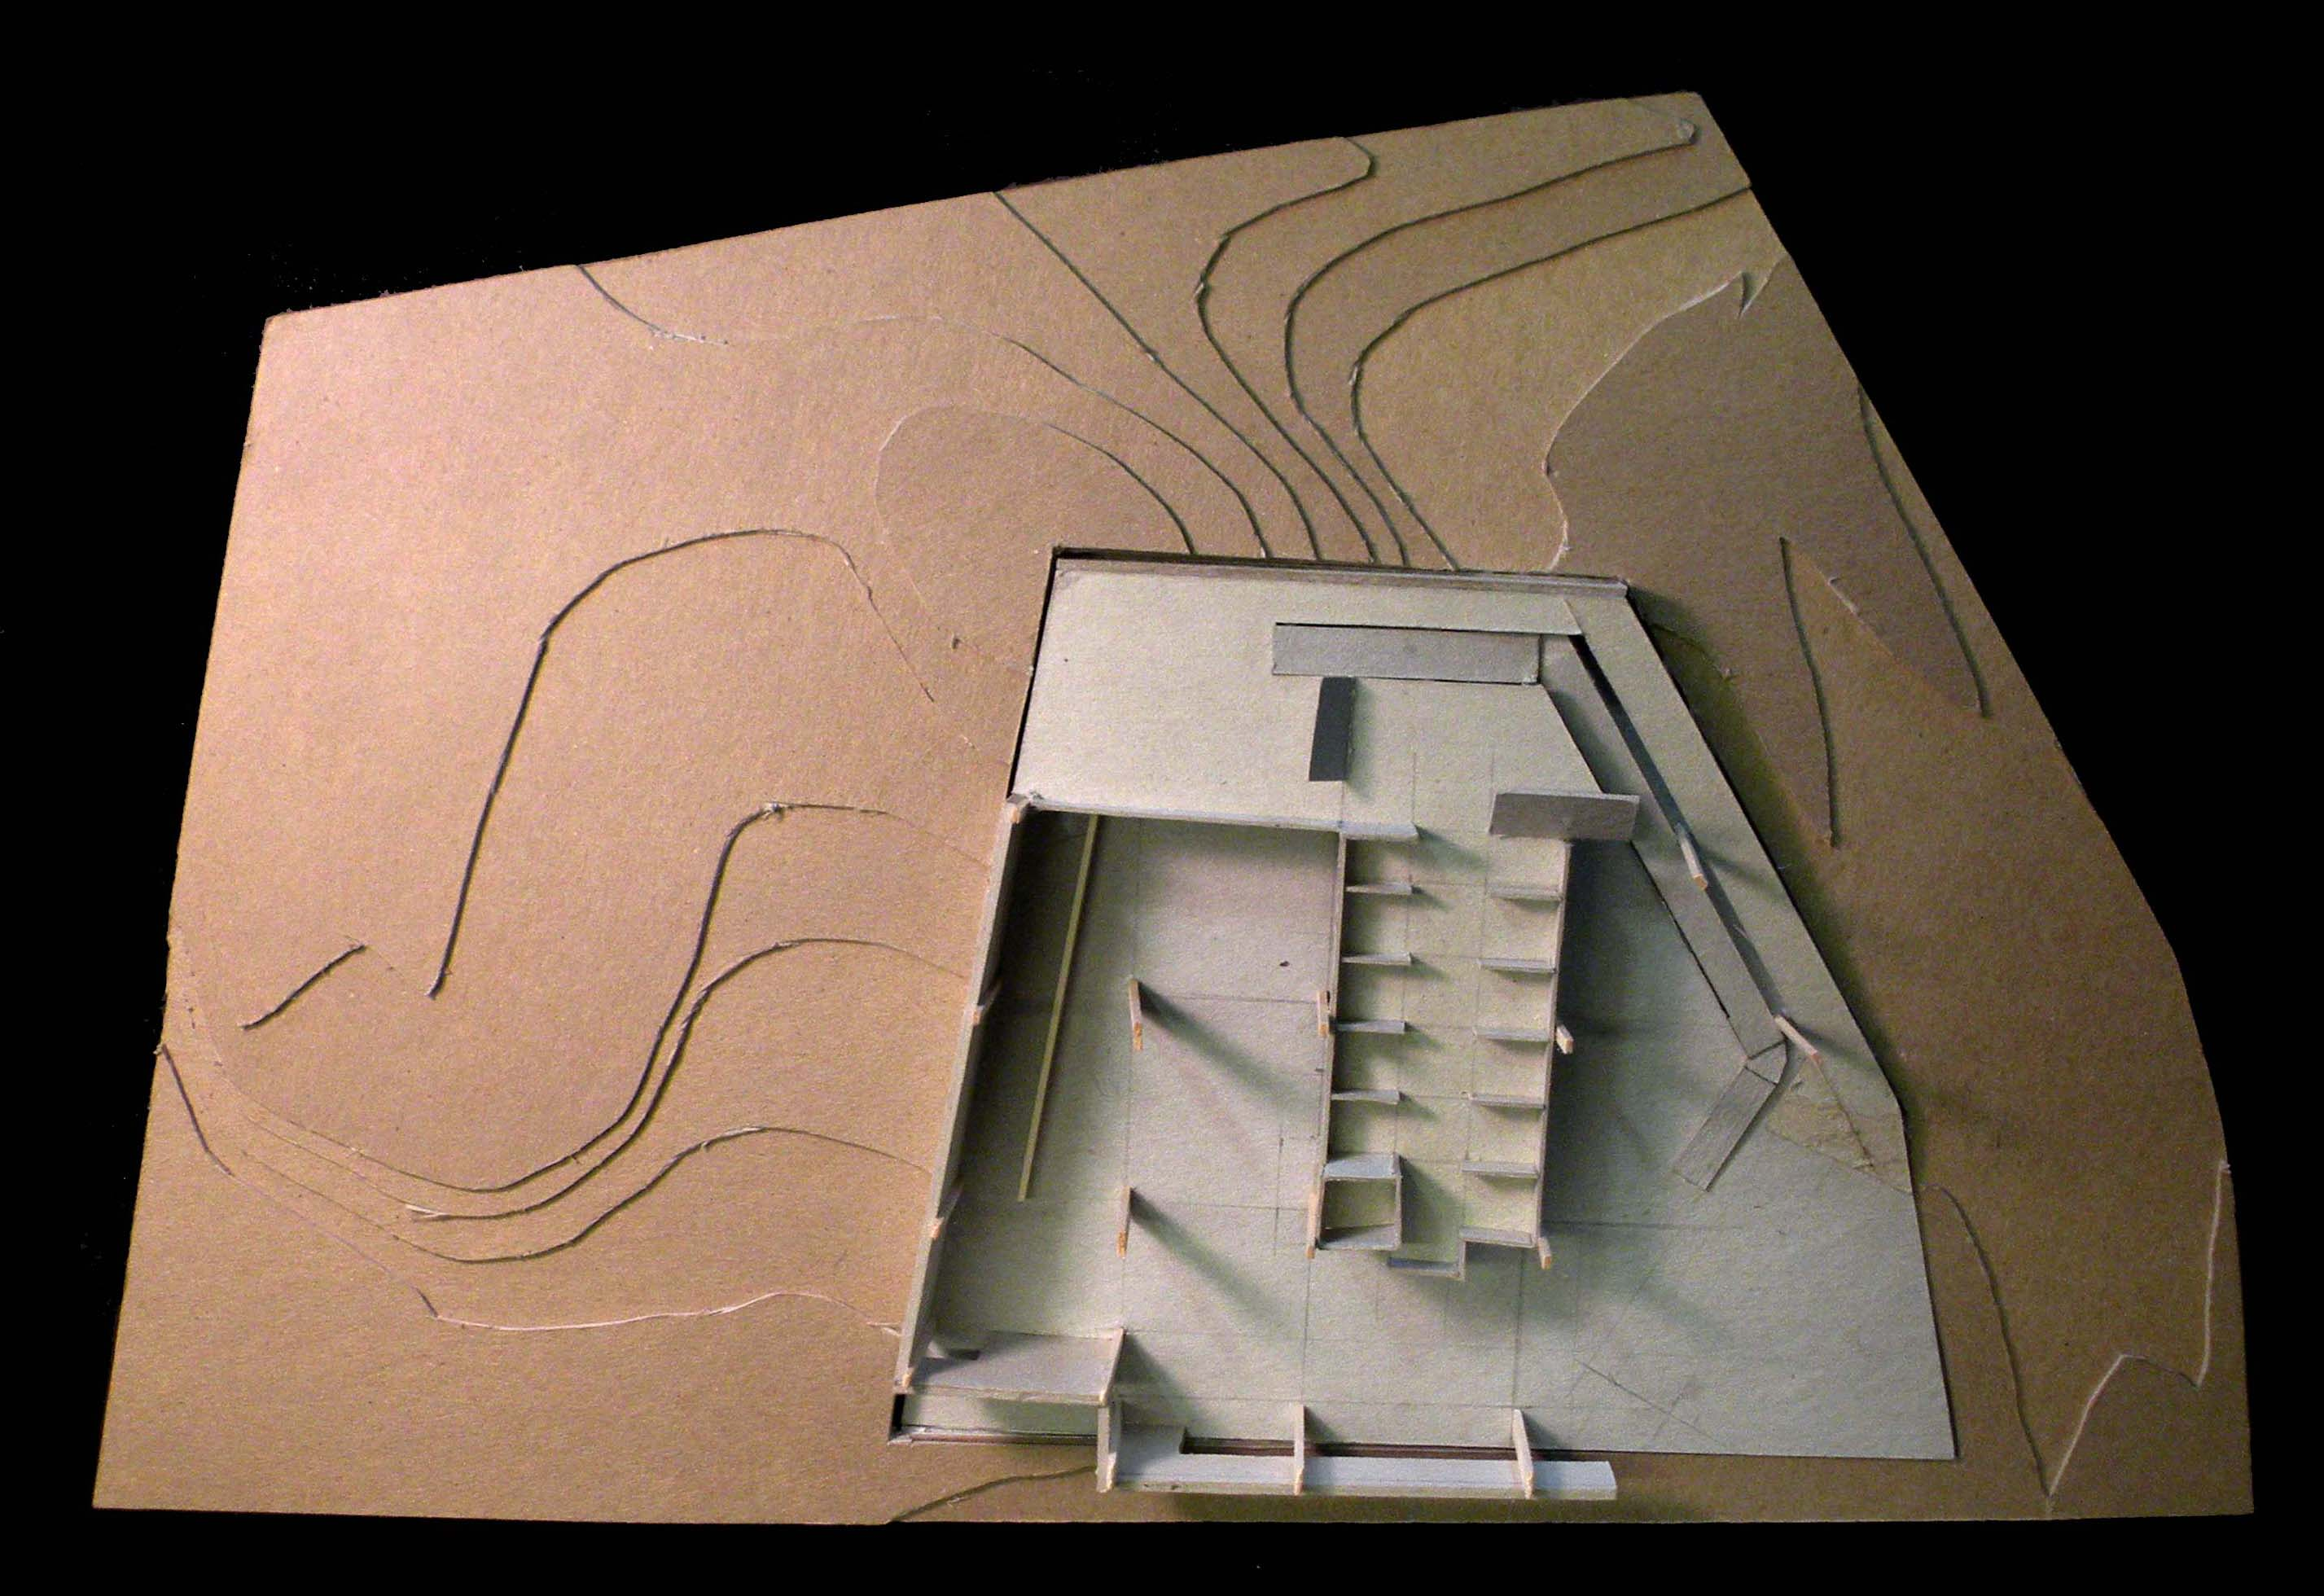 Spatial Model in Topography